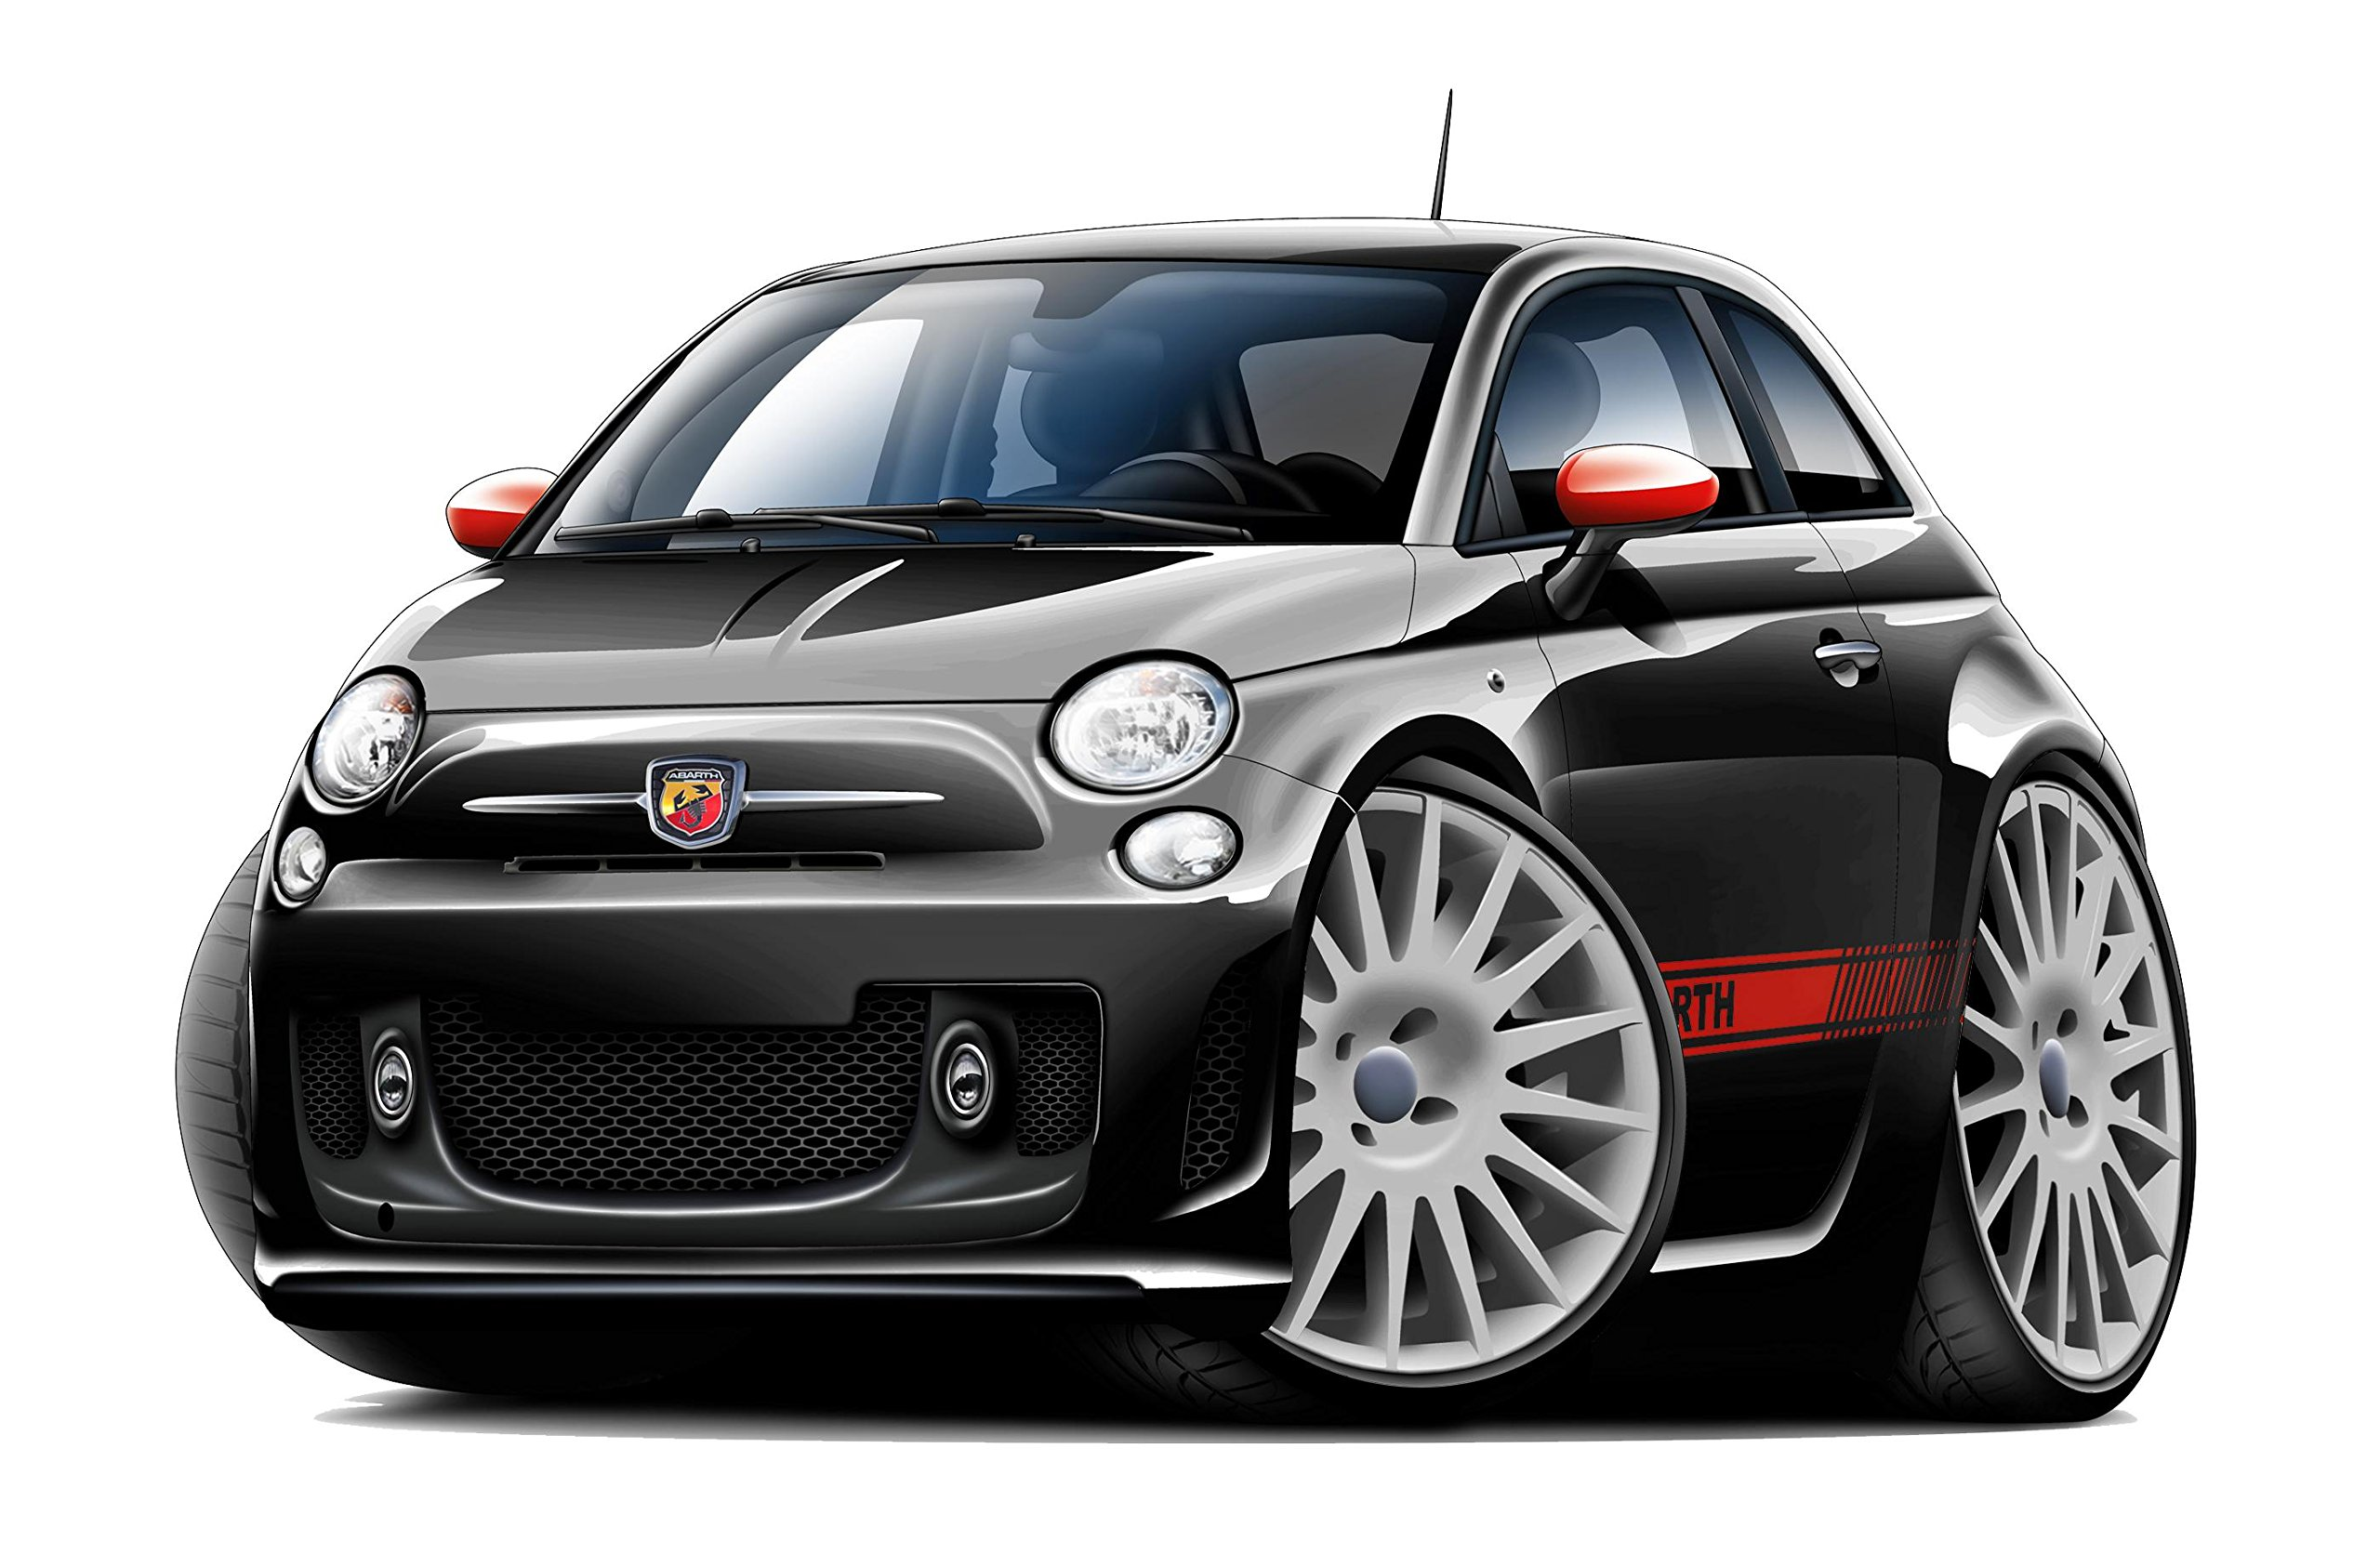 Fiat 500 Abarth WALL DECAL 2ft long Sport Luxury Vehicle Classic Sticker Man Cave Garage Boys Room Decor